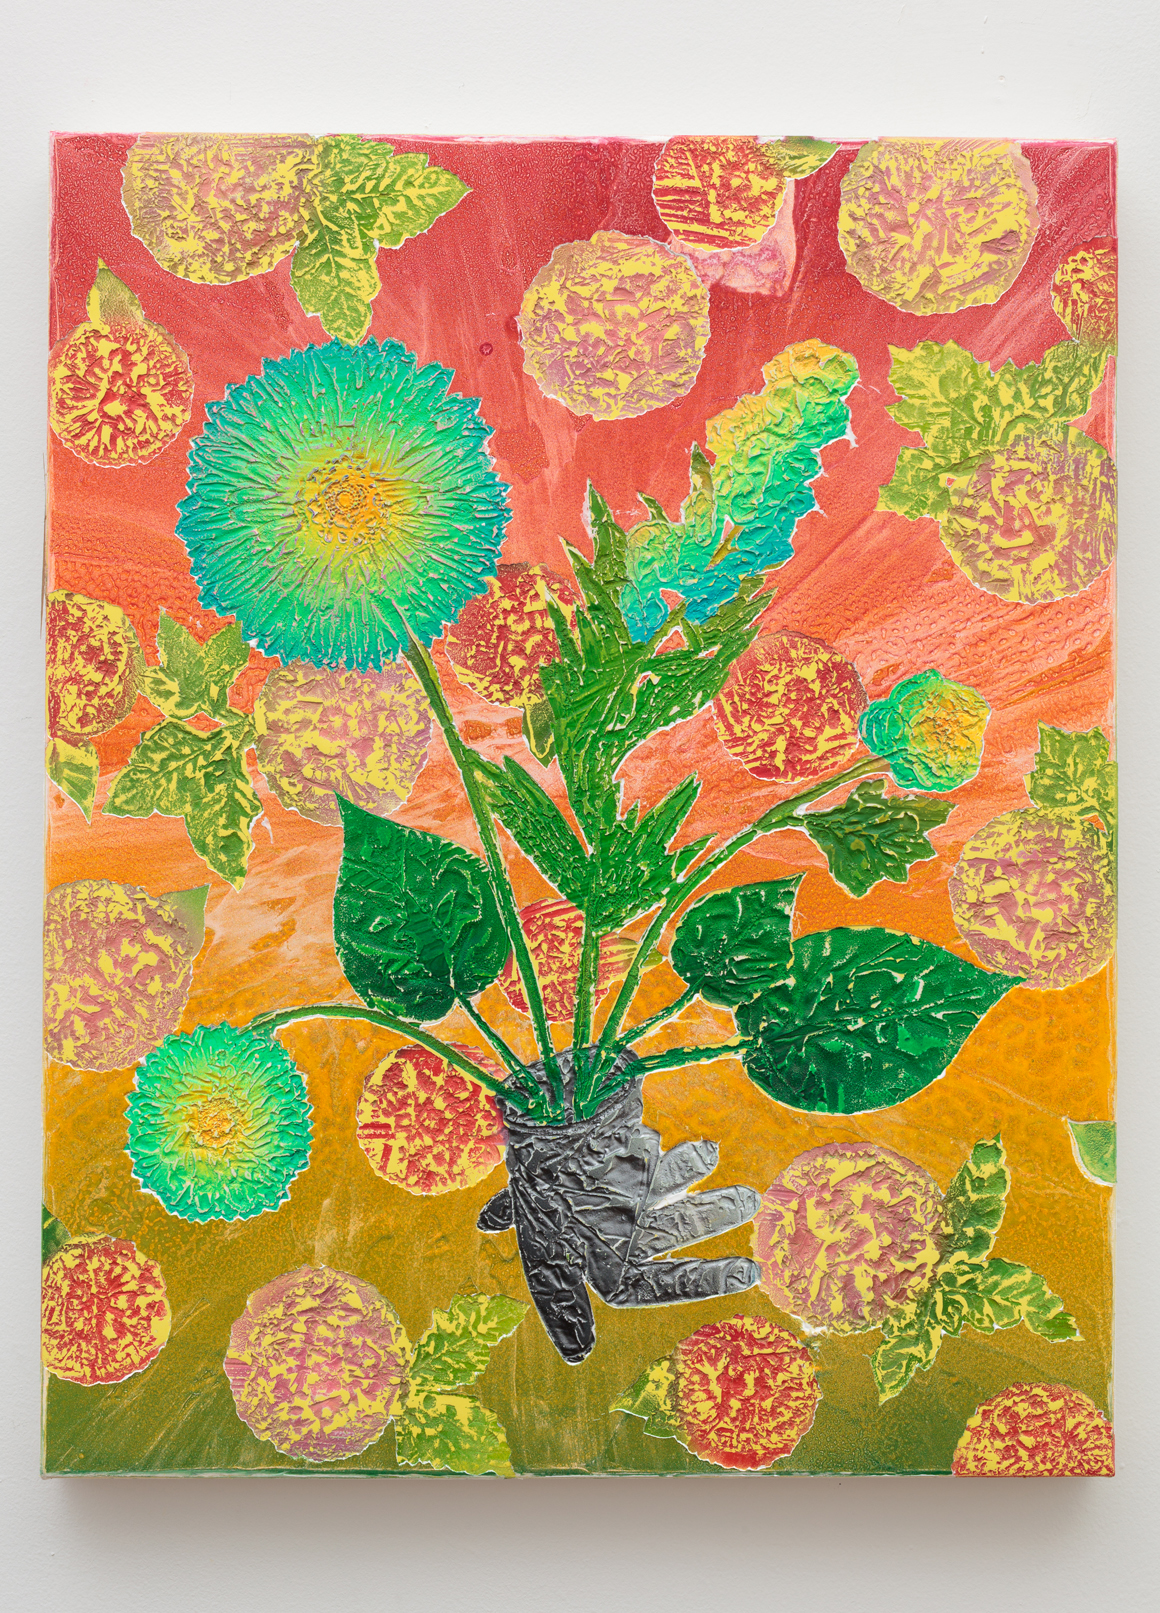 <p><em>Blooming-General-Tree</em><span class='media'>Rubber, resins and paint on canvas</span>24 x 30 in (61 x 76.2 cm)<br>2017<br><a class='inquire' href='mailto:info@gildargallery.com?subject=Artwork Inquiry JCOC0038&body=I am interested in finding out more about Blooming-General-Tree by Joey Cocciardi'>Inquire</a></p>